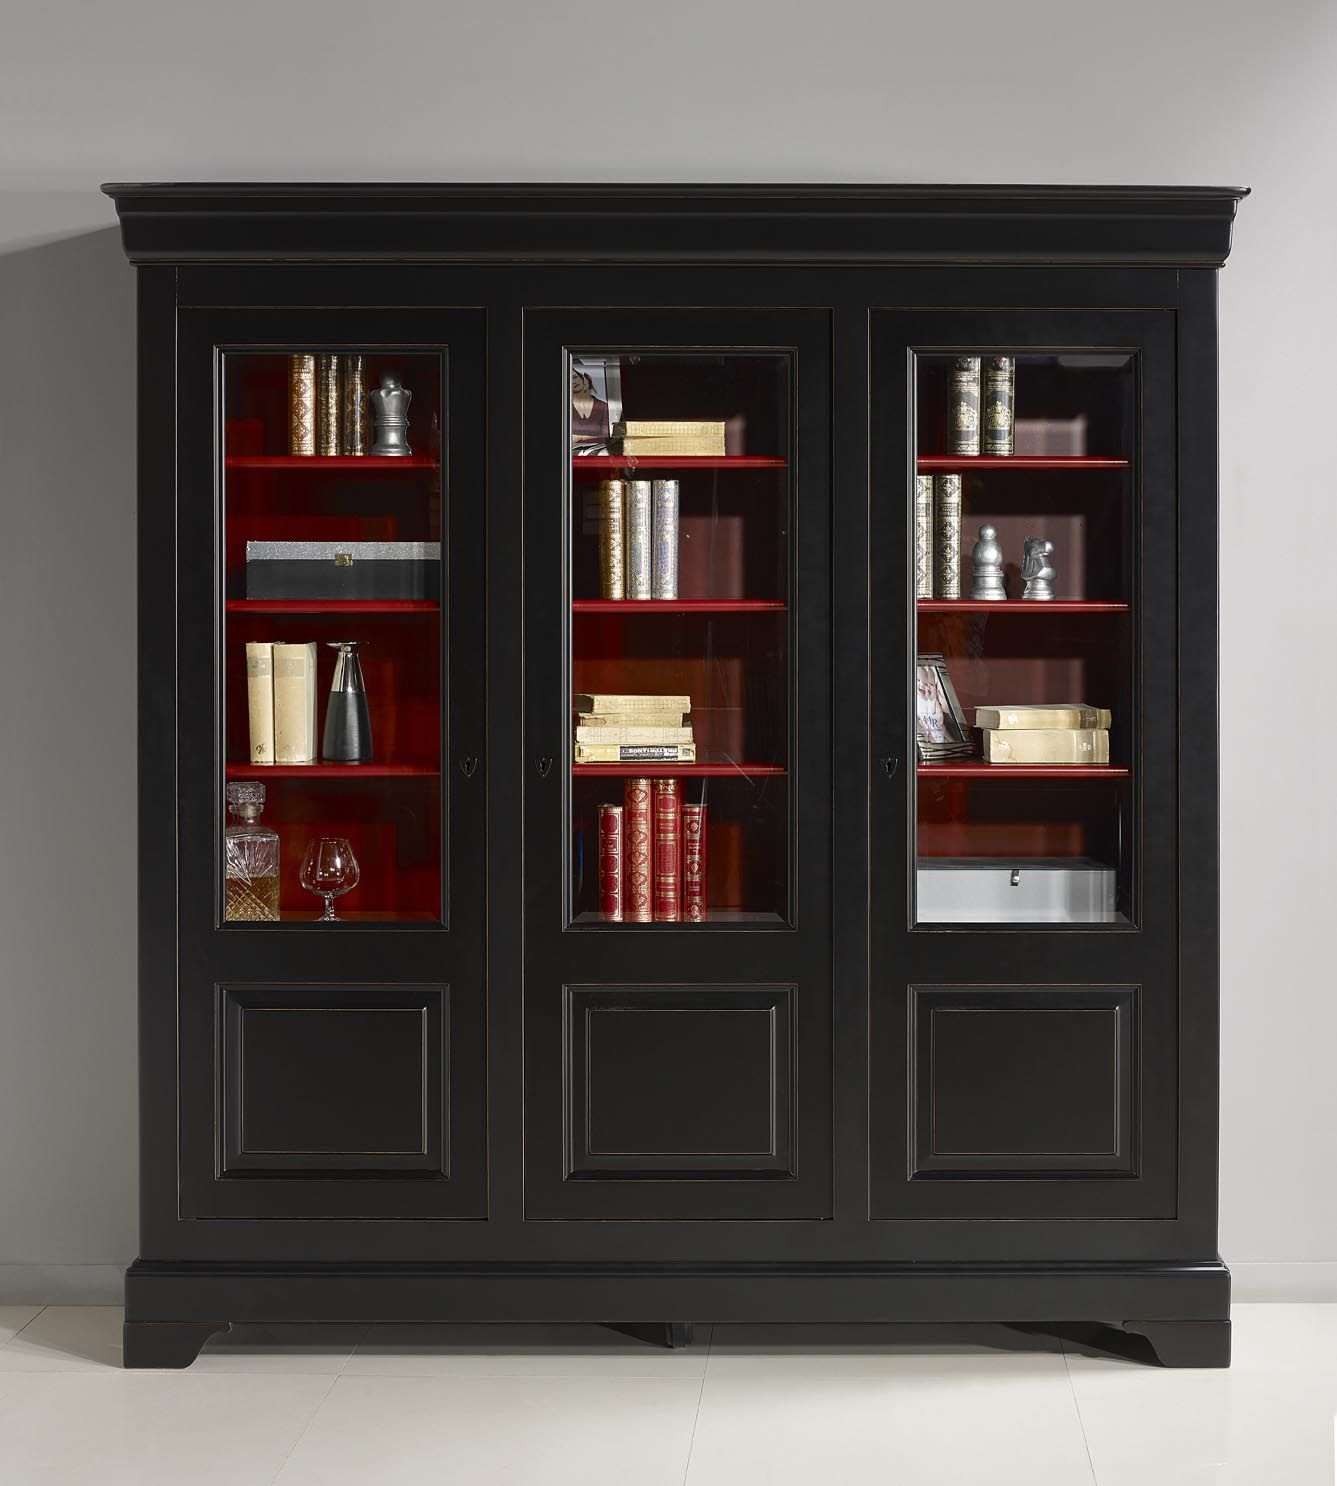 biblioth que 3 portes flore r alis e en merisier massif de style louis philippe patin noir et. Black Bedroom Furniture Sets. Home Design Ideas